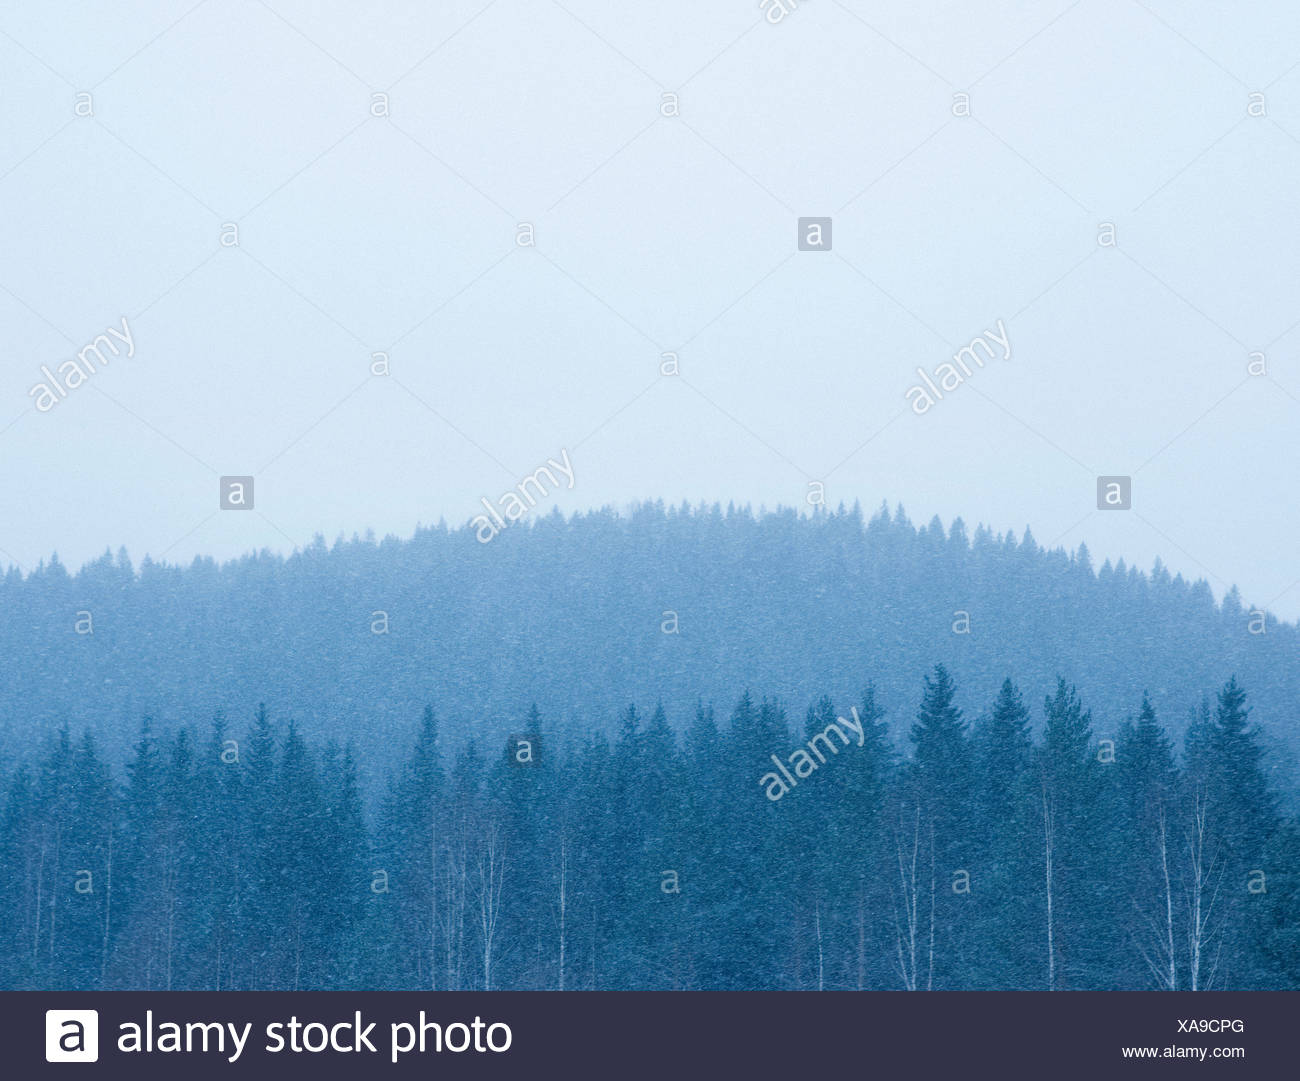 Trees in a forest during snow fall Finland - Stock Image